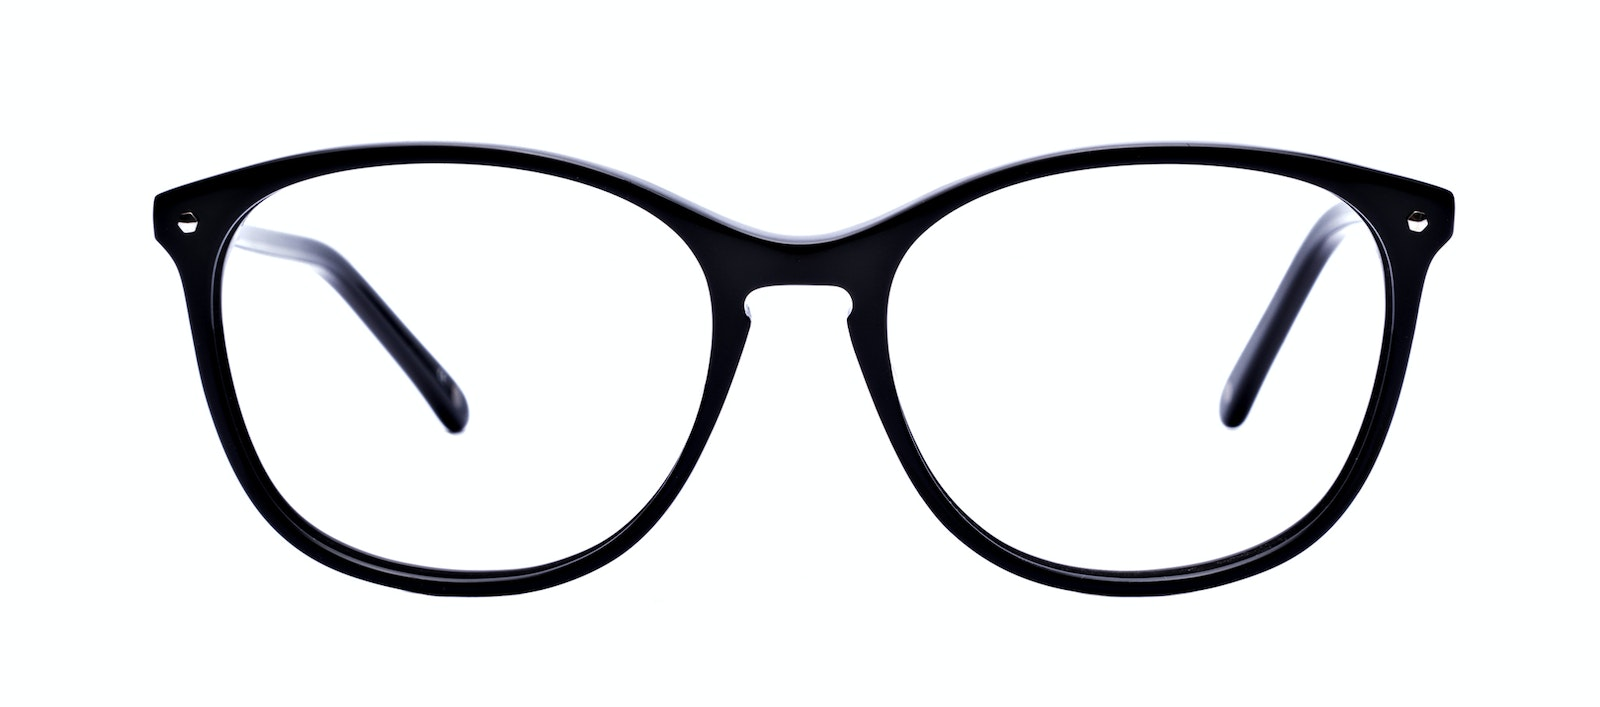 Affordable Fashion Glasses Round Eyeglasses Women Versa Pitch Black Front